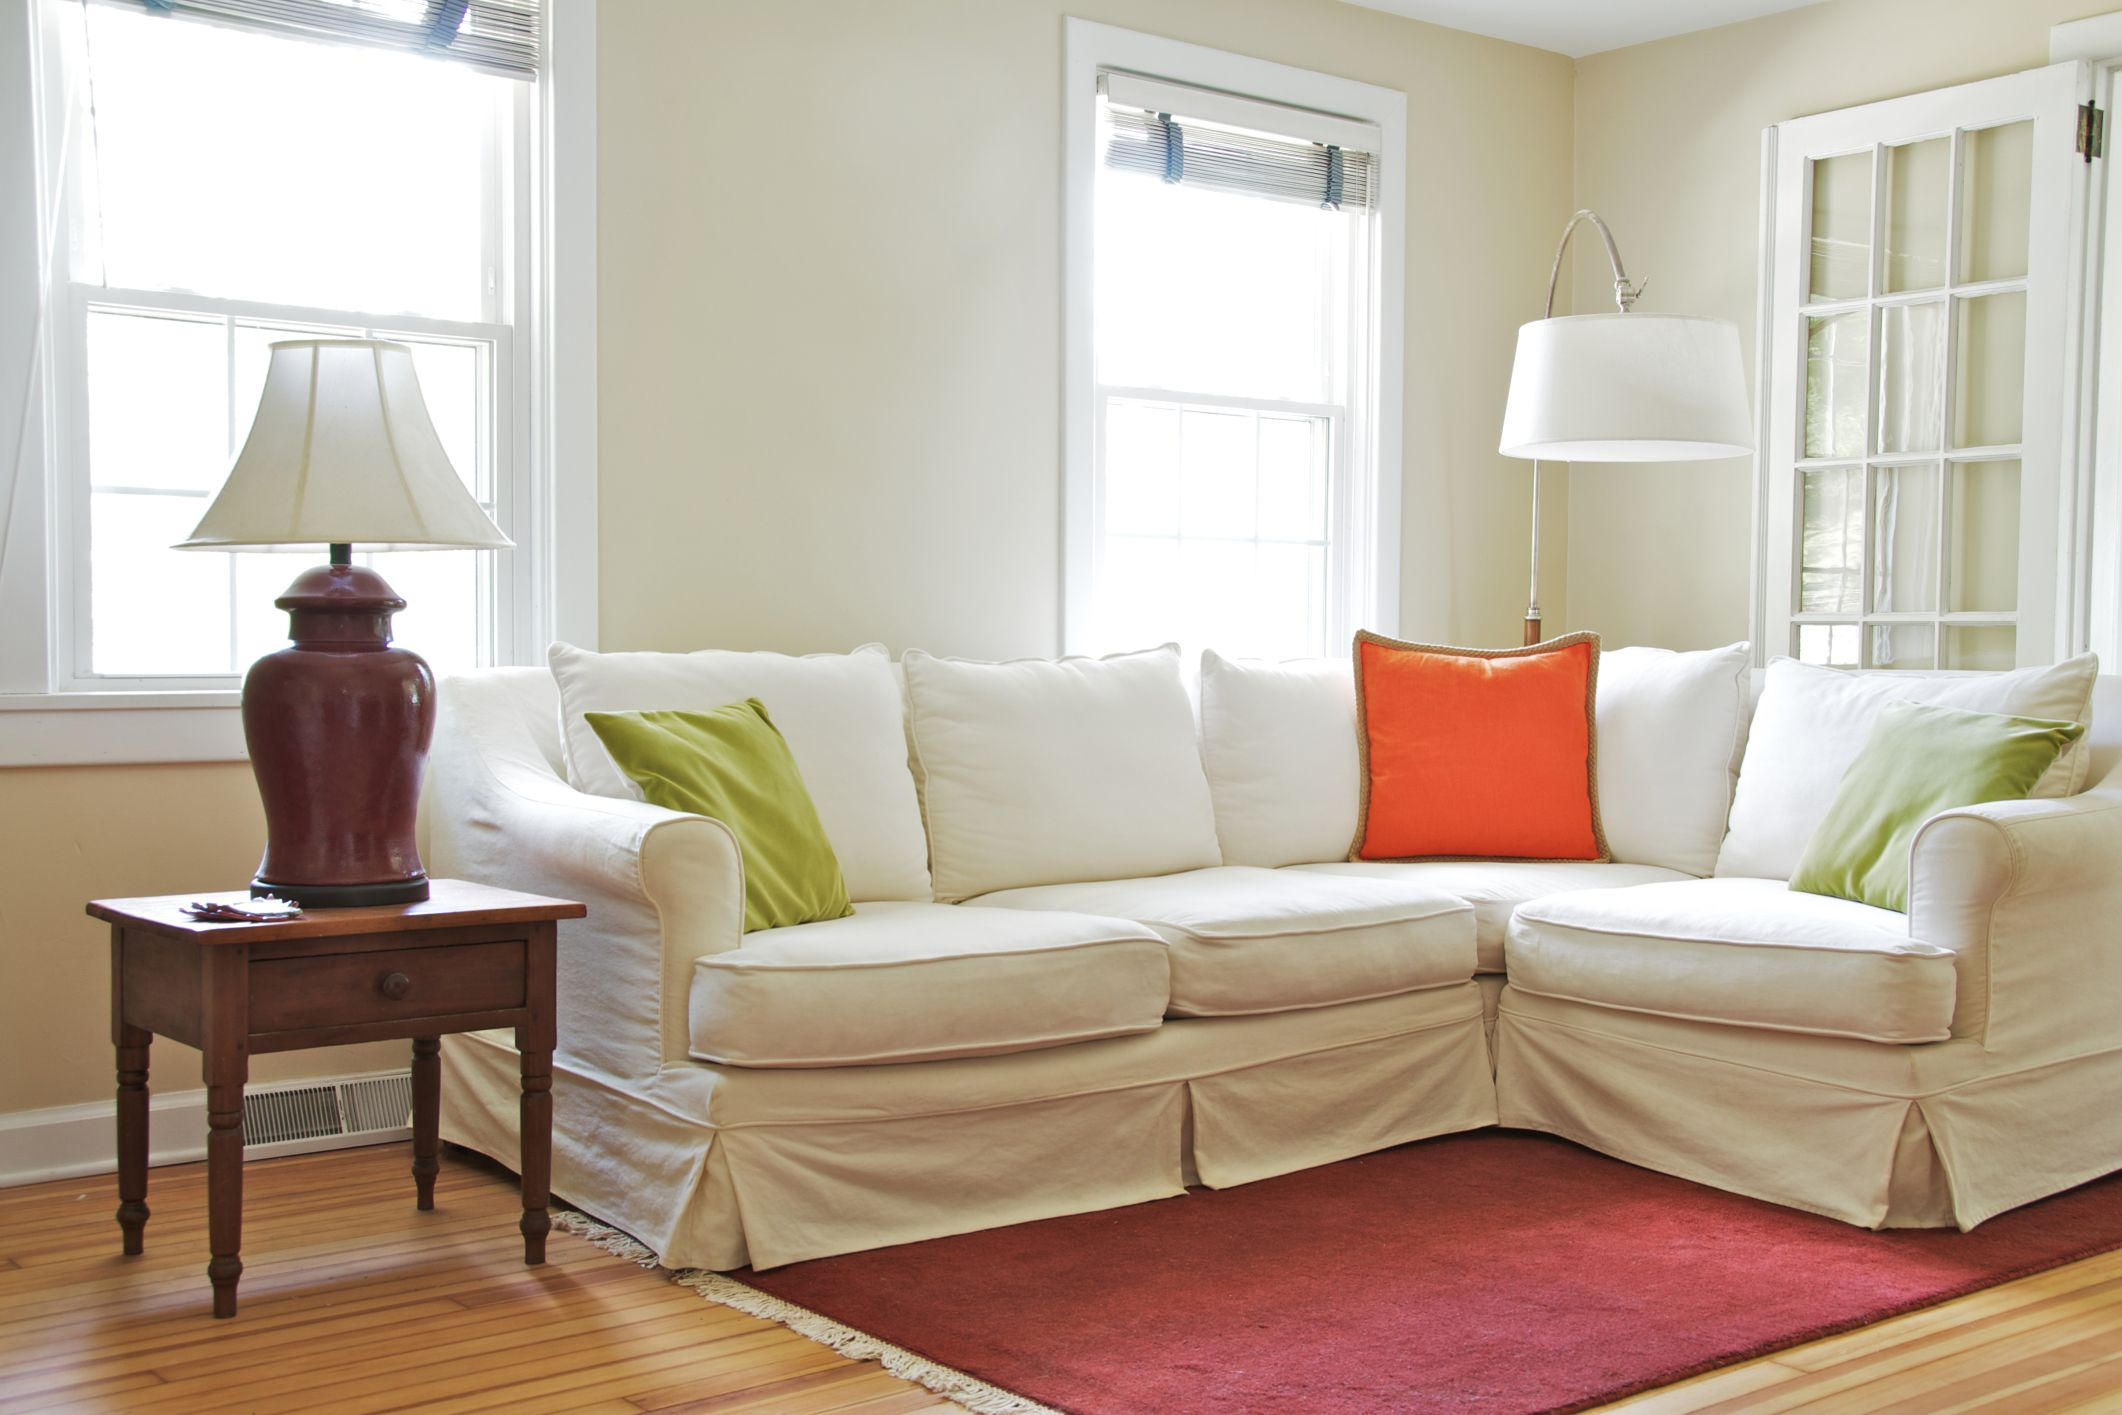 16 Easy Ways To Get Your House Ready For Spring Sofas For Small Spaces Small Space Living Room Small Apartment Couch